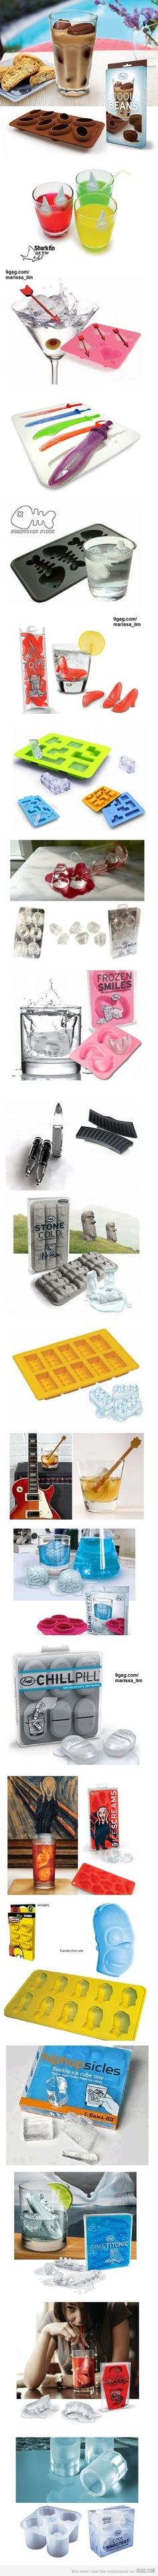 Awesome icecubes - Awesome!